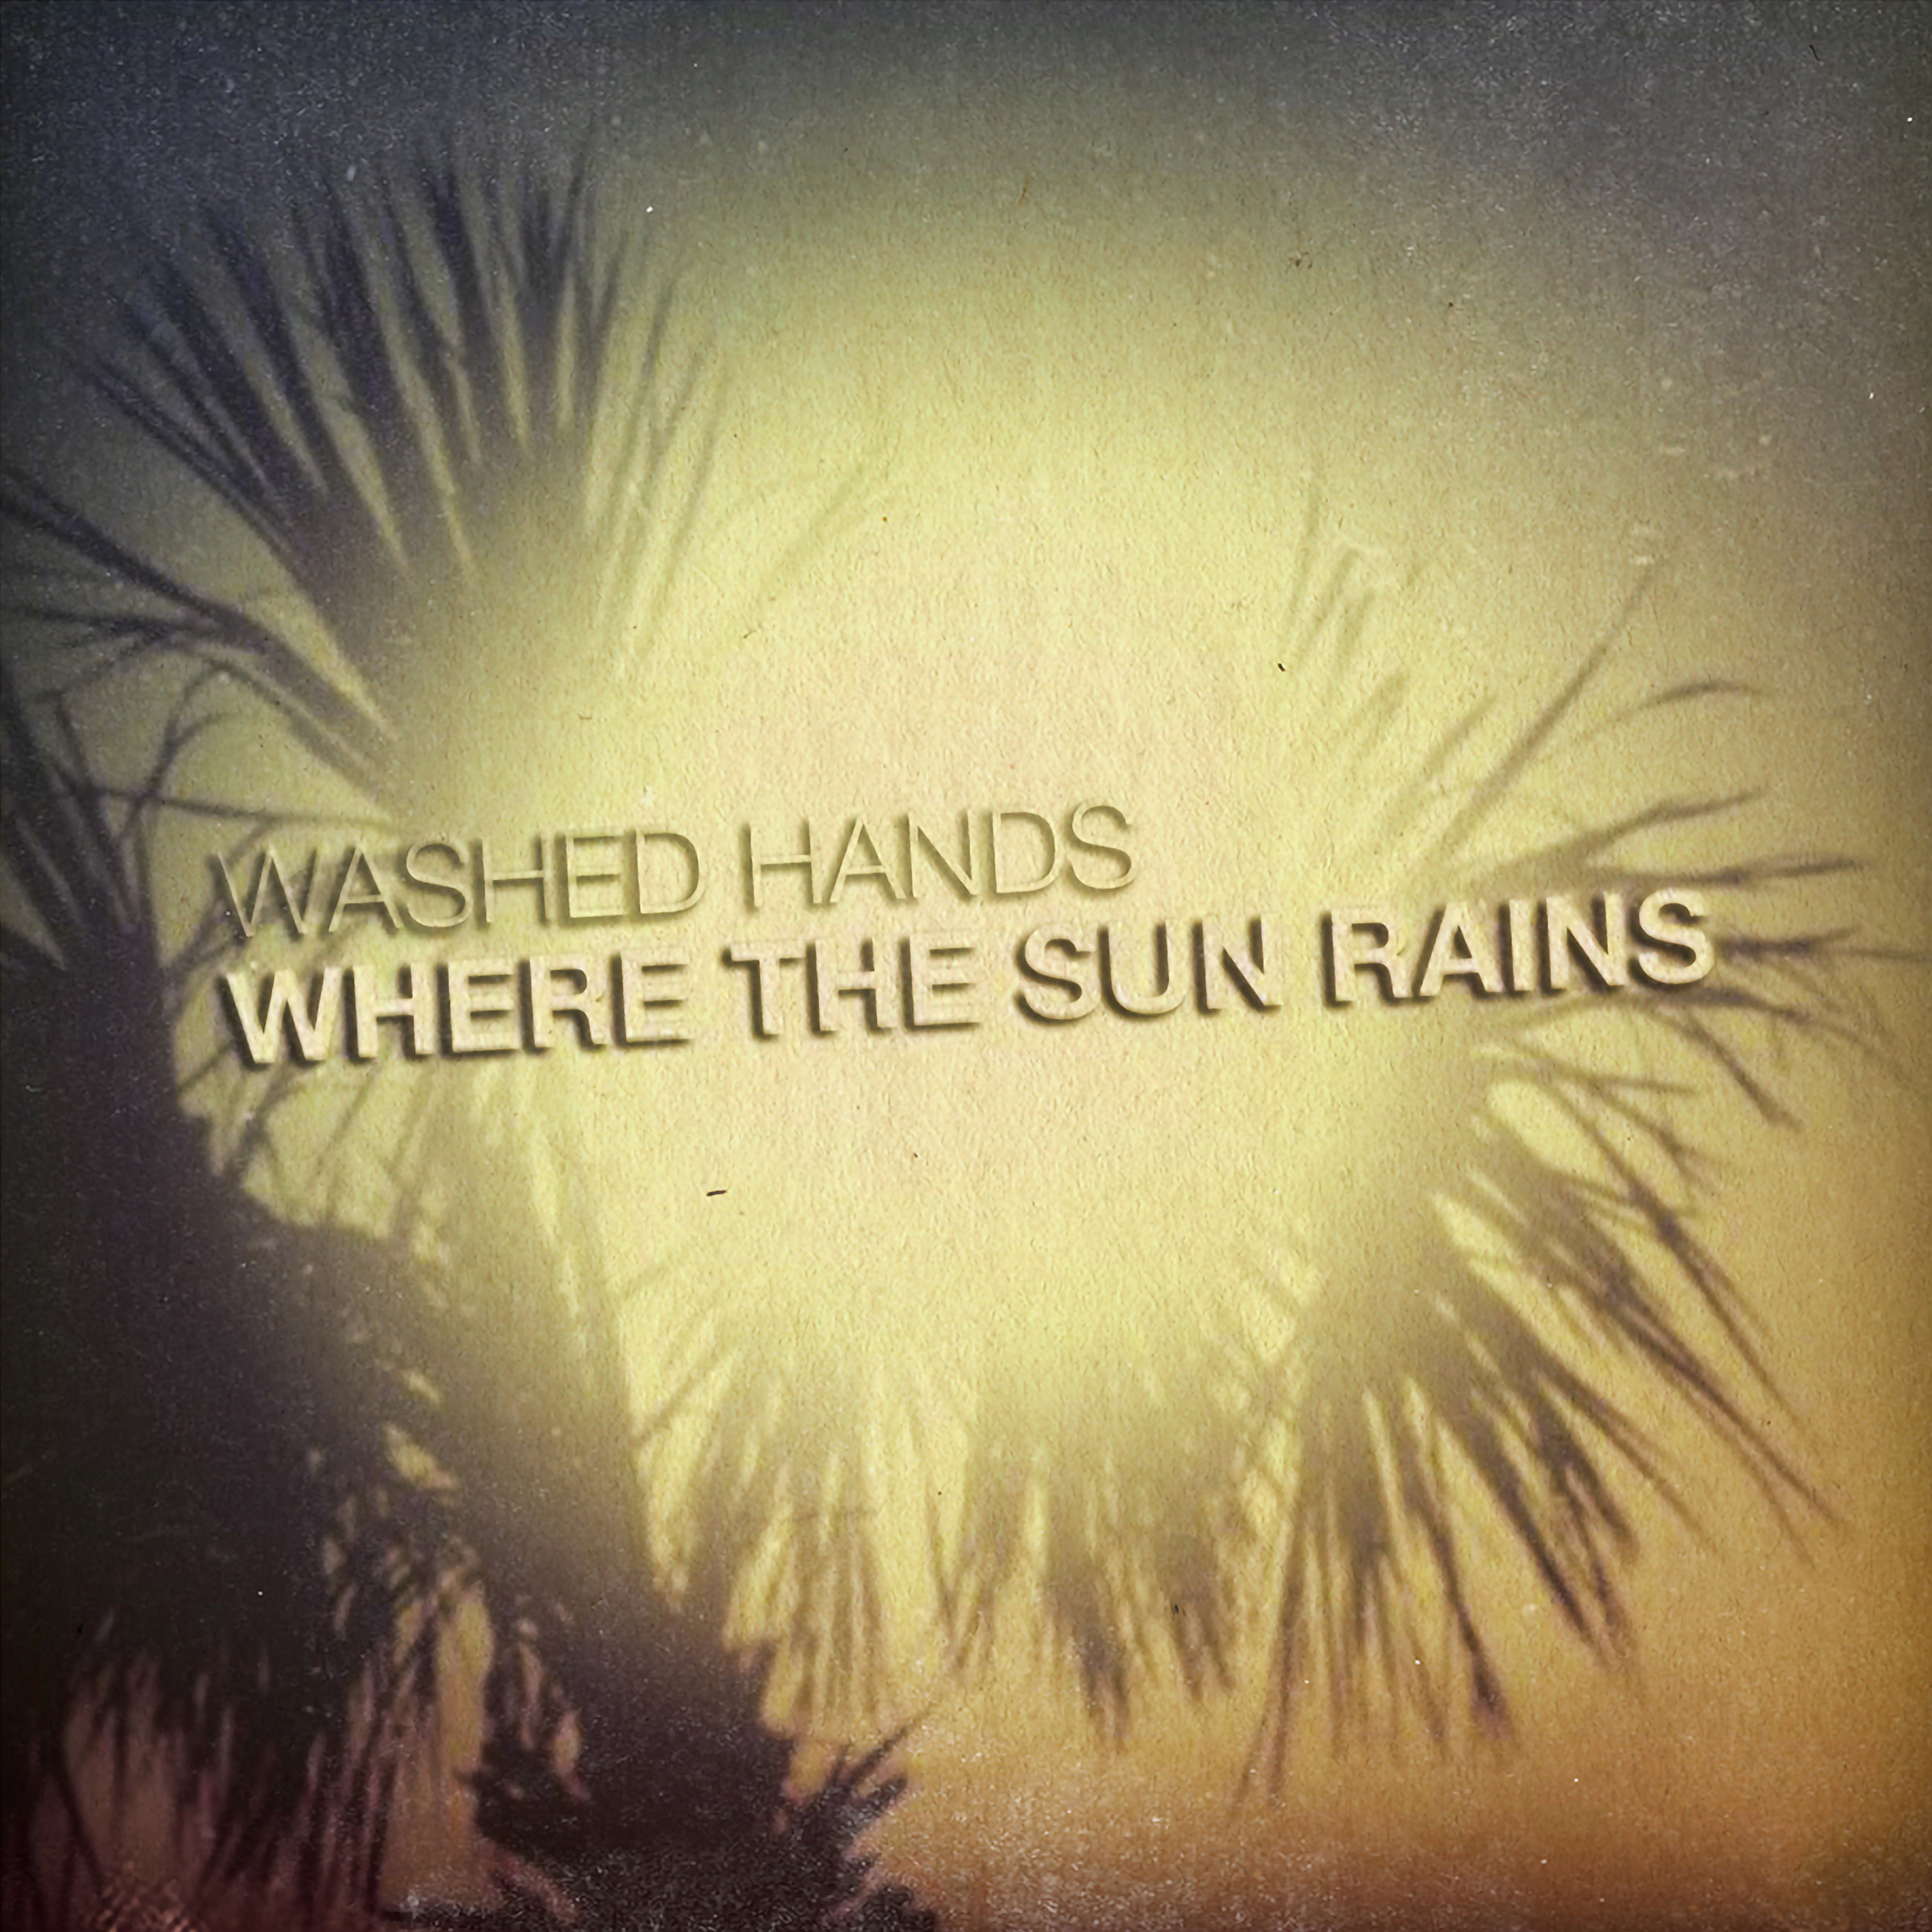 Washed Hands - Where the Sun Rains